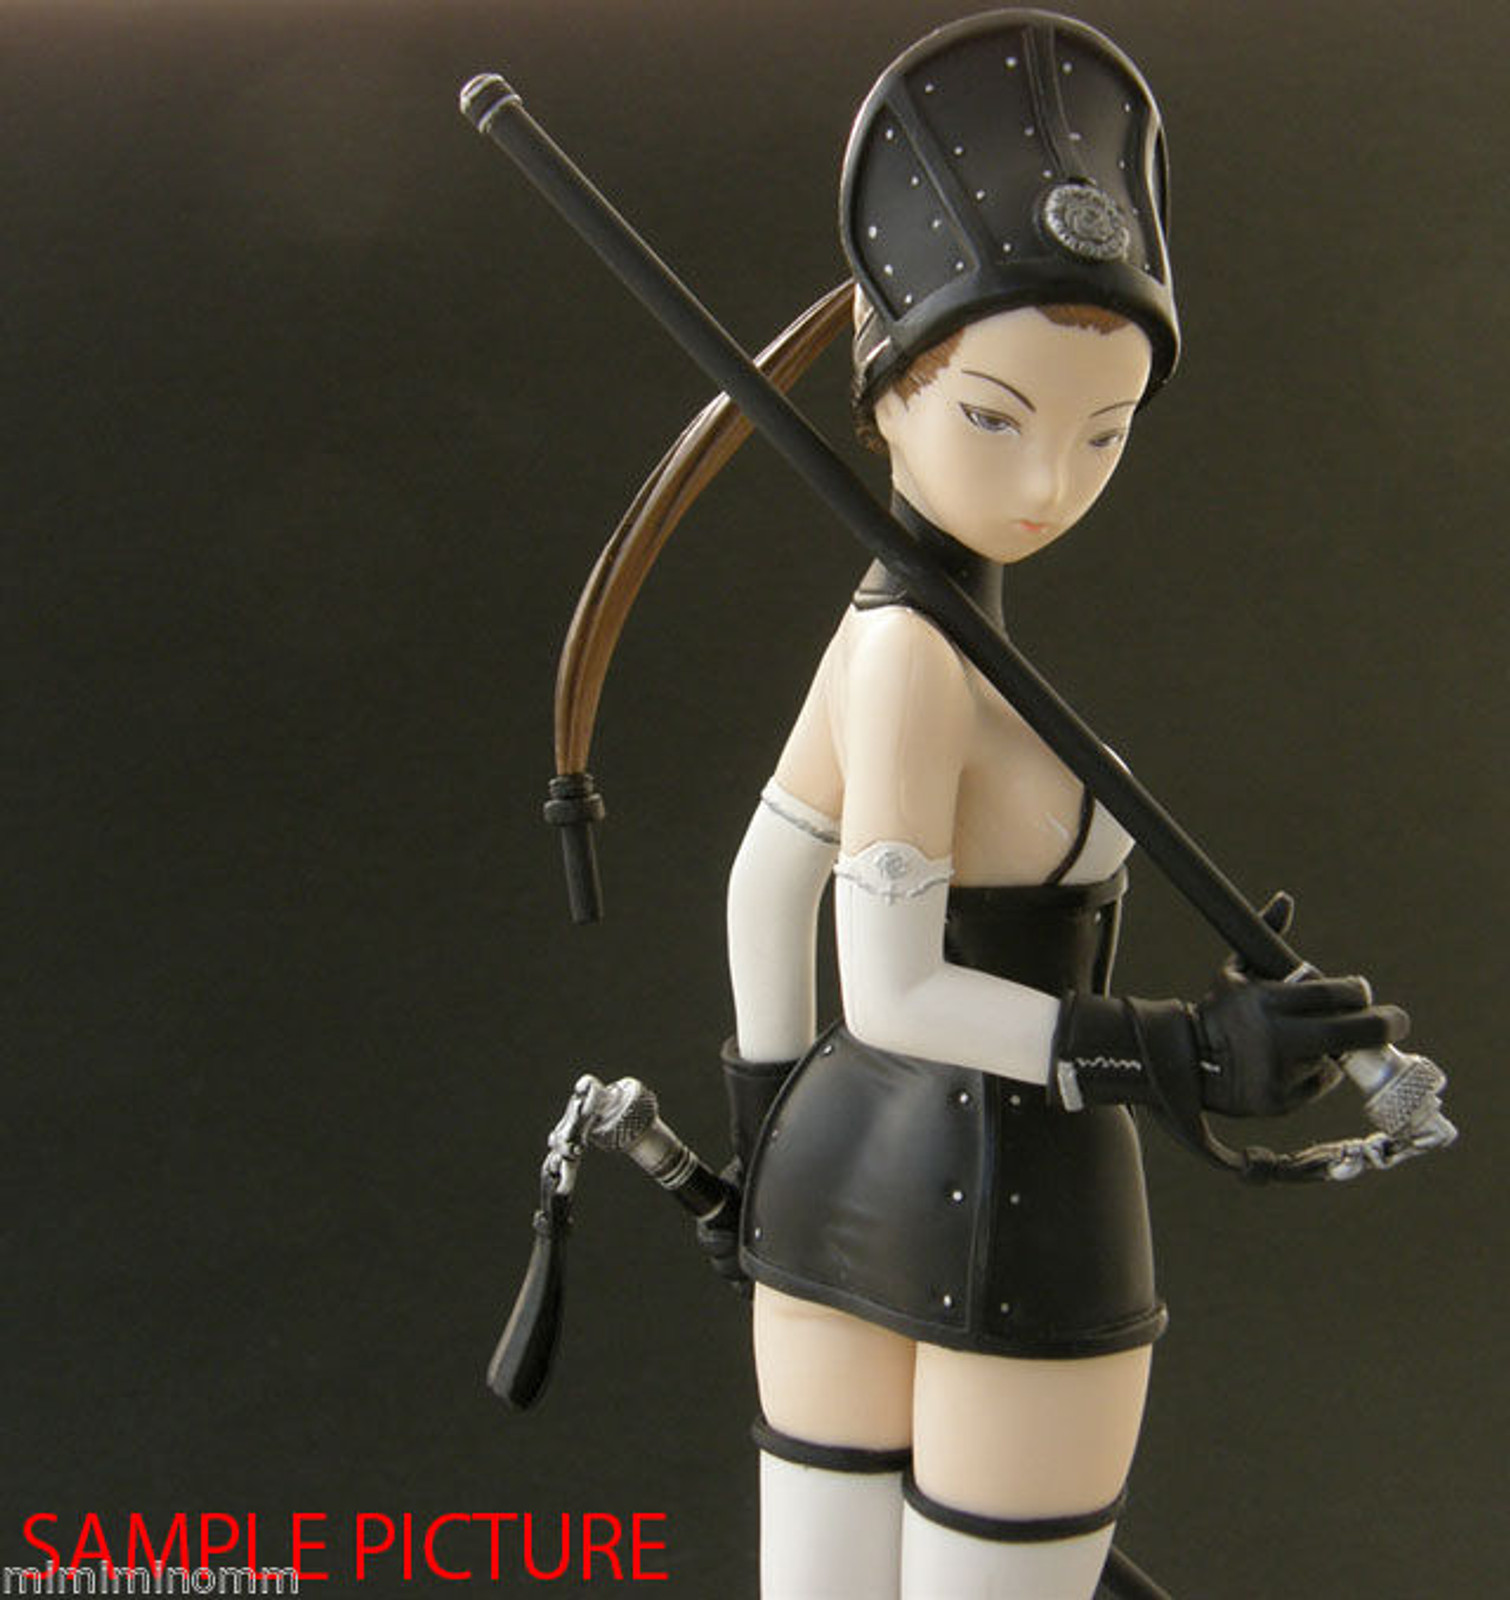 TRINODE PSE Products #02 Range Murata Figure Vice JAPAN ANIME MANGA Robot